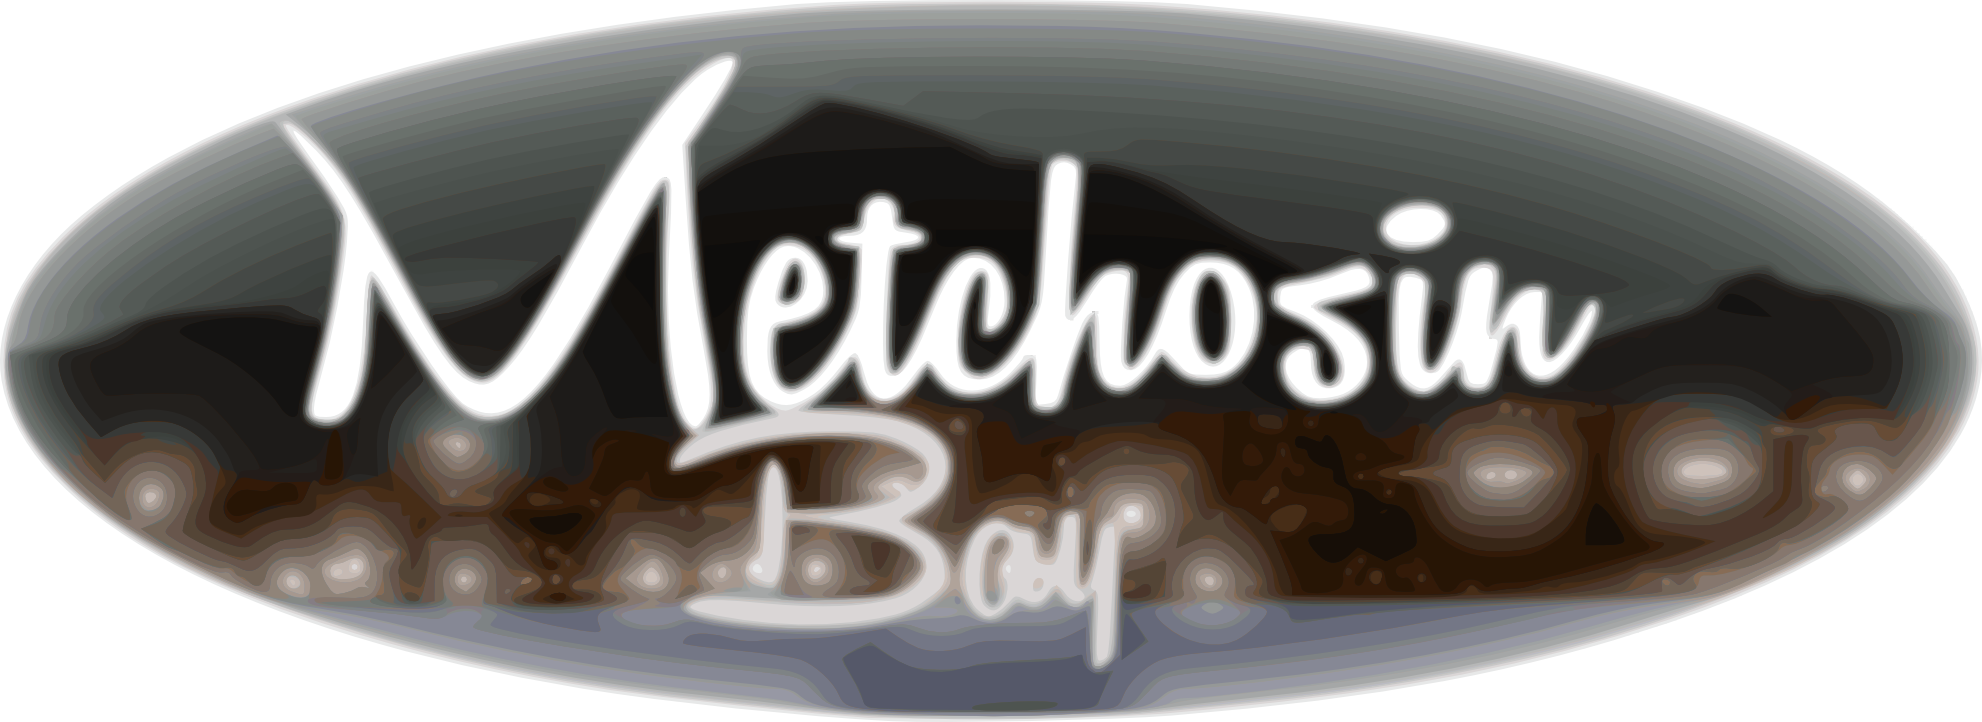 Logo Design by الملا سفيان - Entry No. 22 in the Logo Design Contest Logo Design for Metchosin Bay.